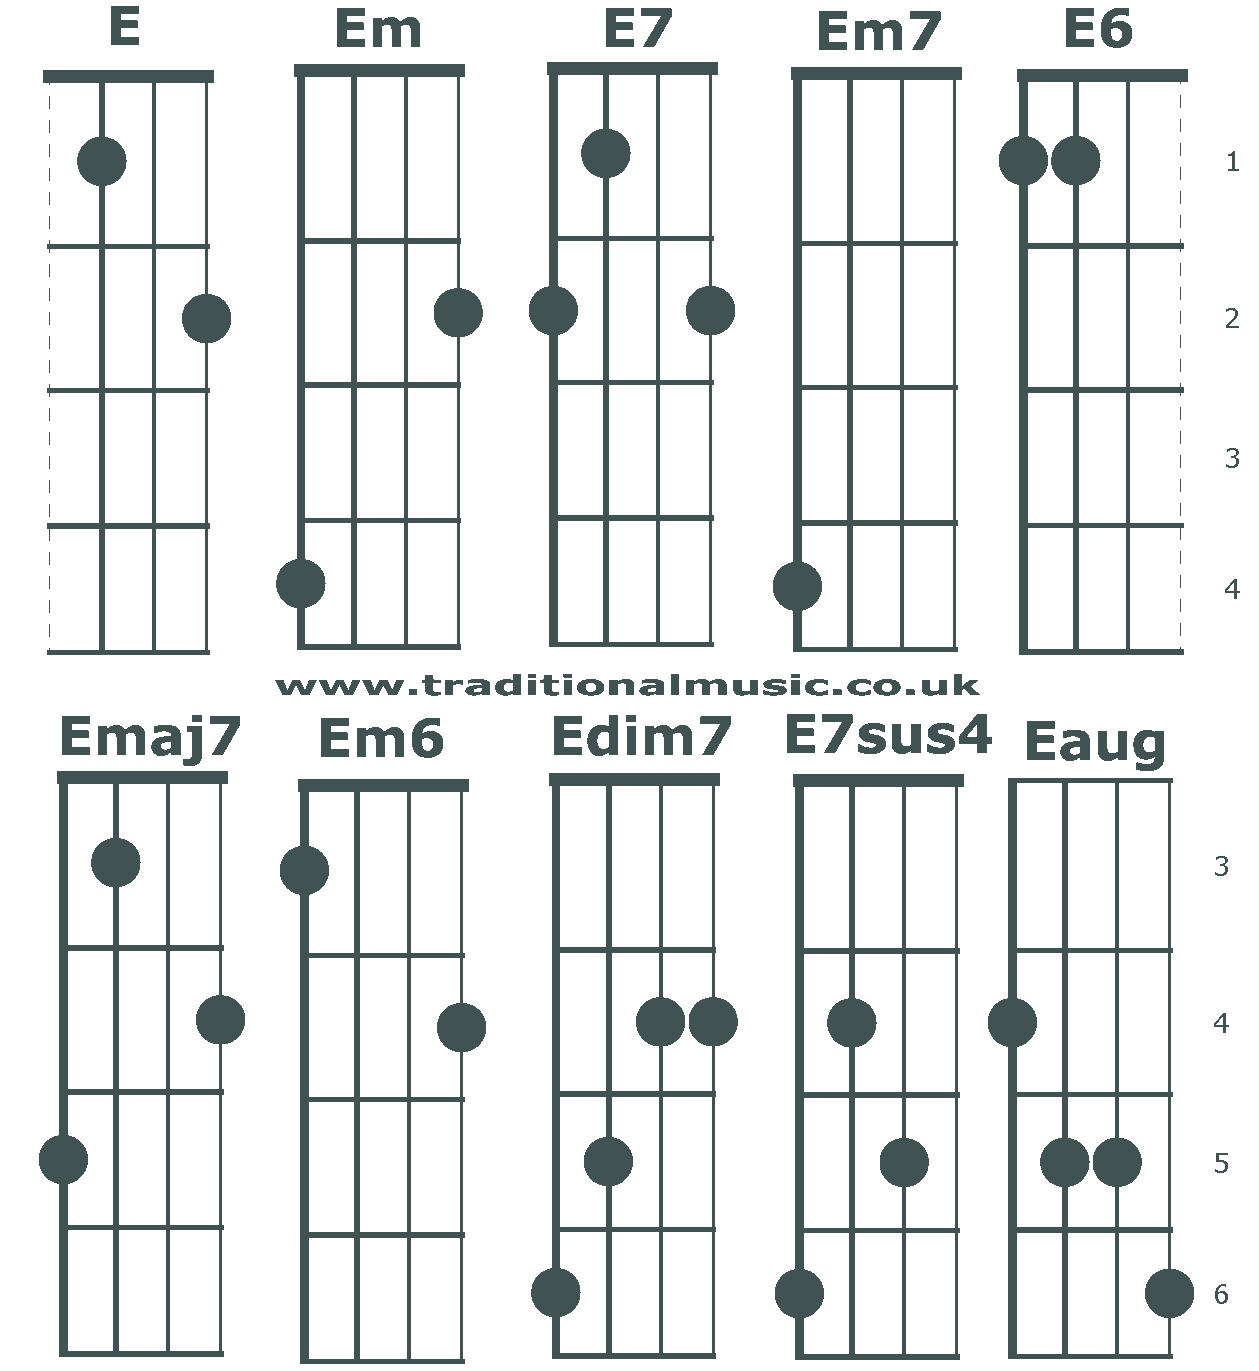 Chords starting E for 5 string Banjo in C tuning